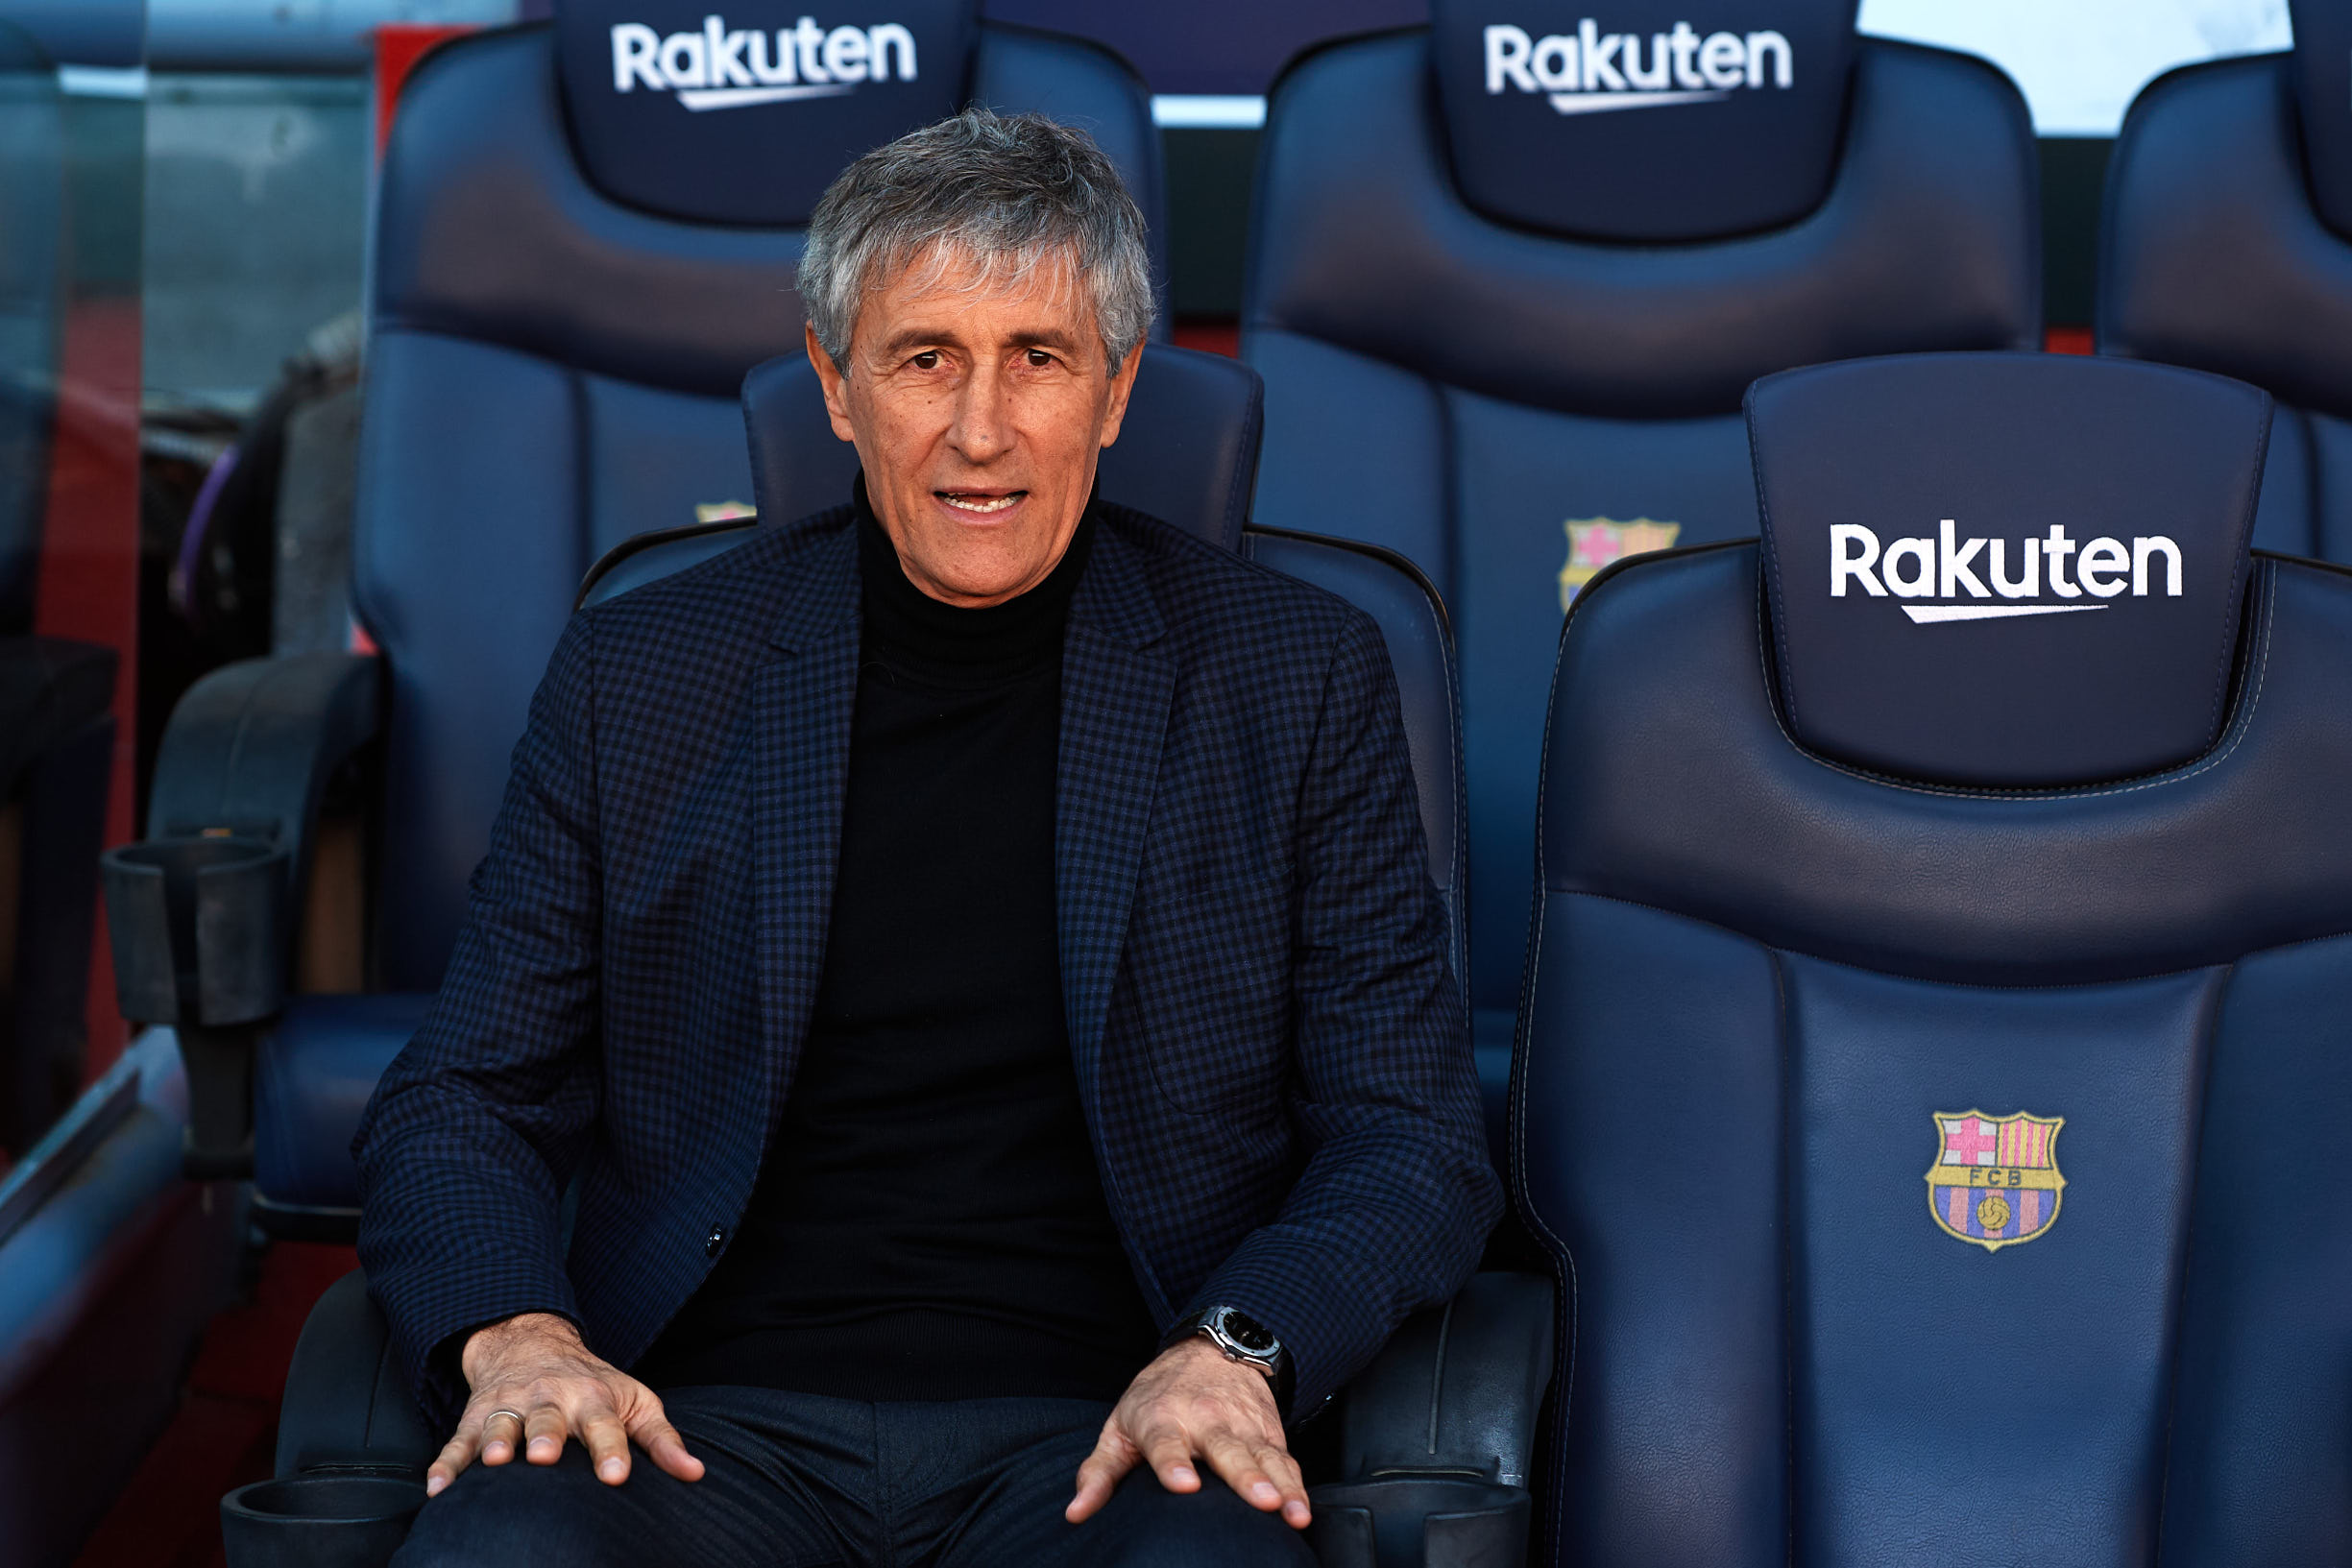 BARCELONA, SPAIN - JANUARY 14: FC Barcelona Head Coach Quique Setien sits on the bench and poses for the media as he is unveiled as new FC Barcelona Coach at Camp Nou on January 14, 2020 in Barcelona, Spain. (Photo by Alex Caparros/Getty Images)